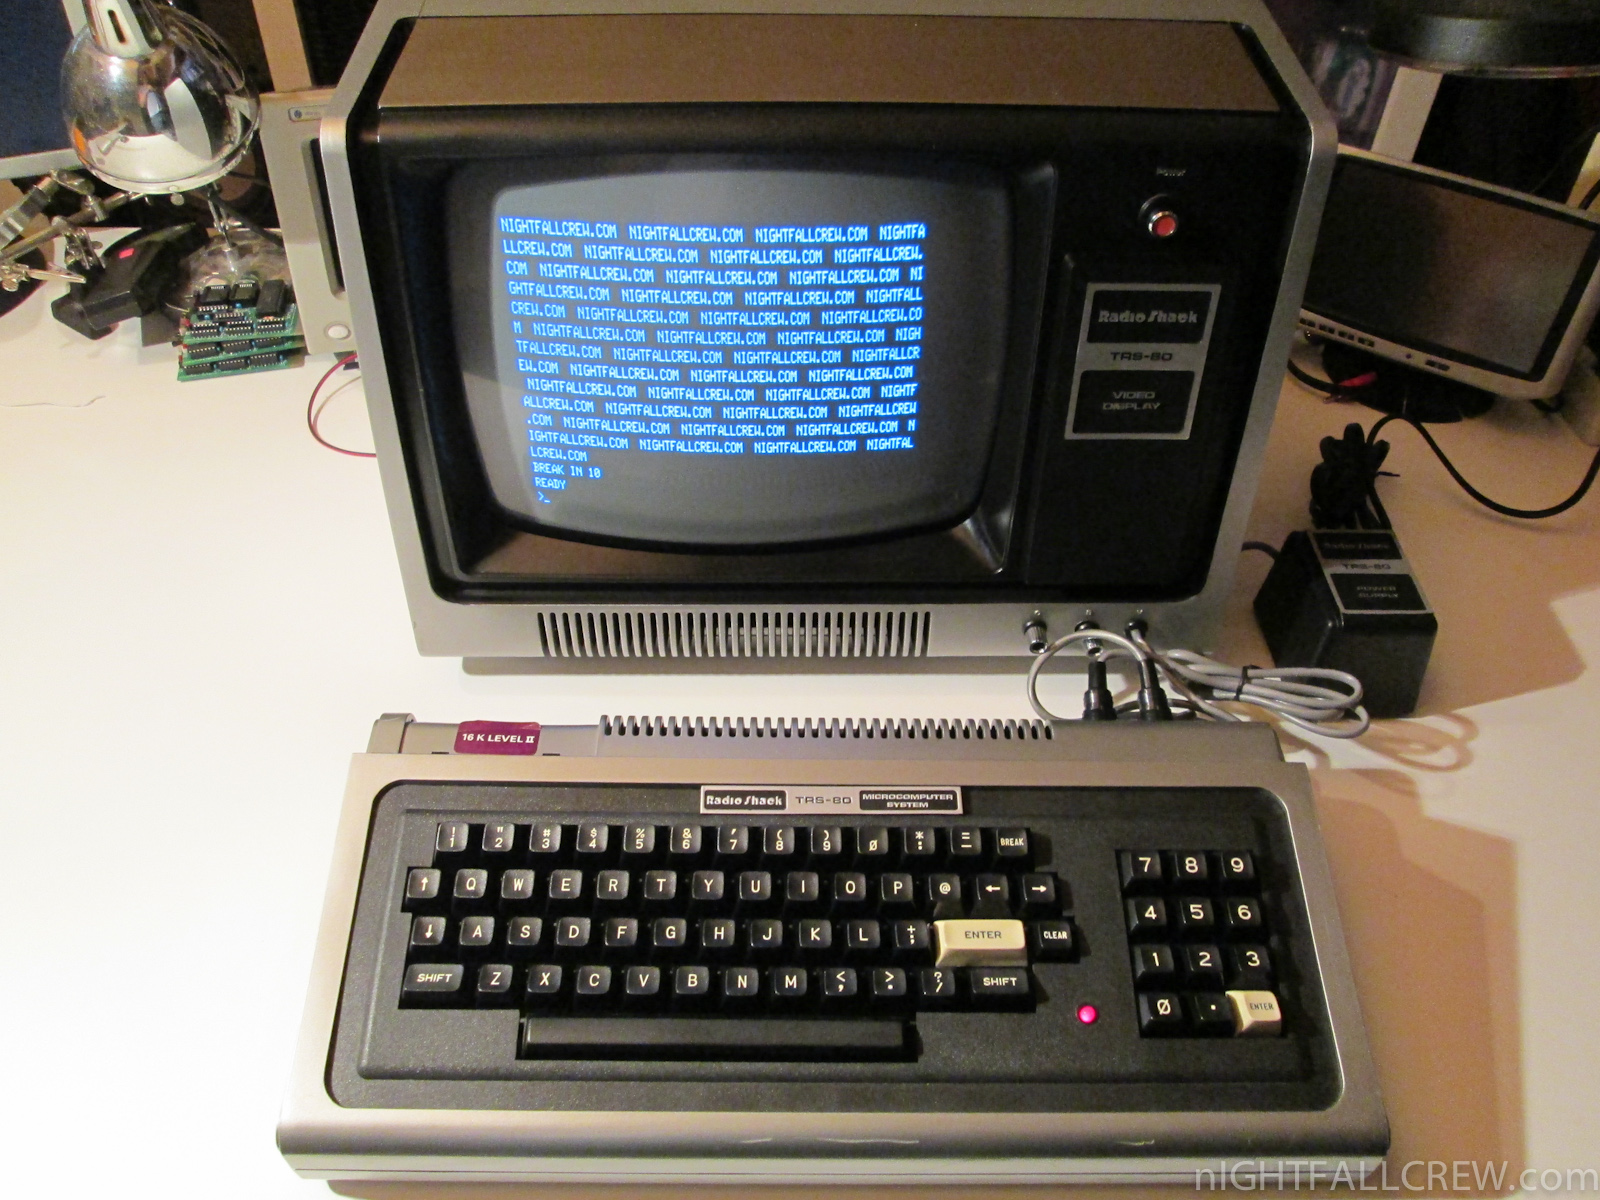 Radio Shack Trs 80 Model 1 Video Display Nightfall